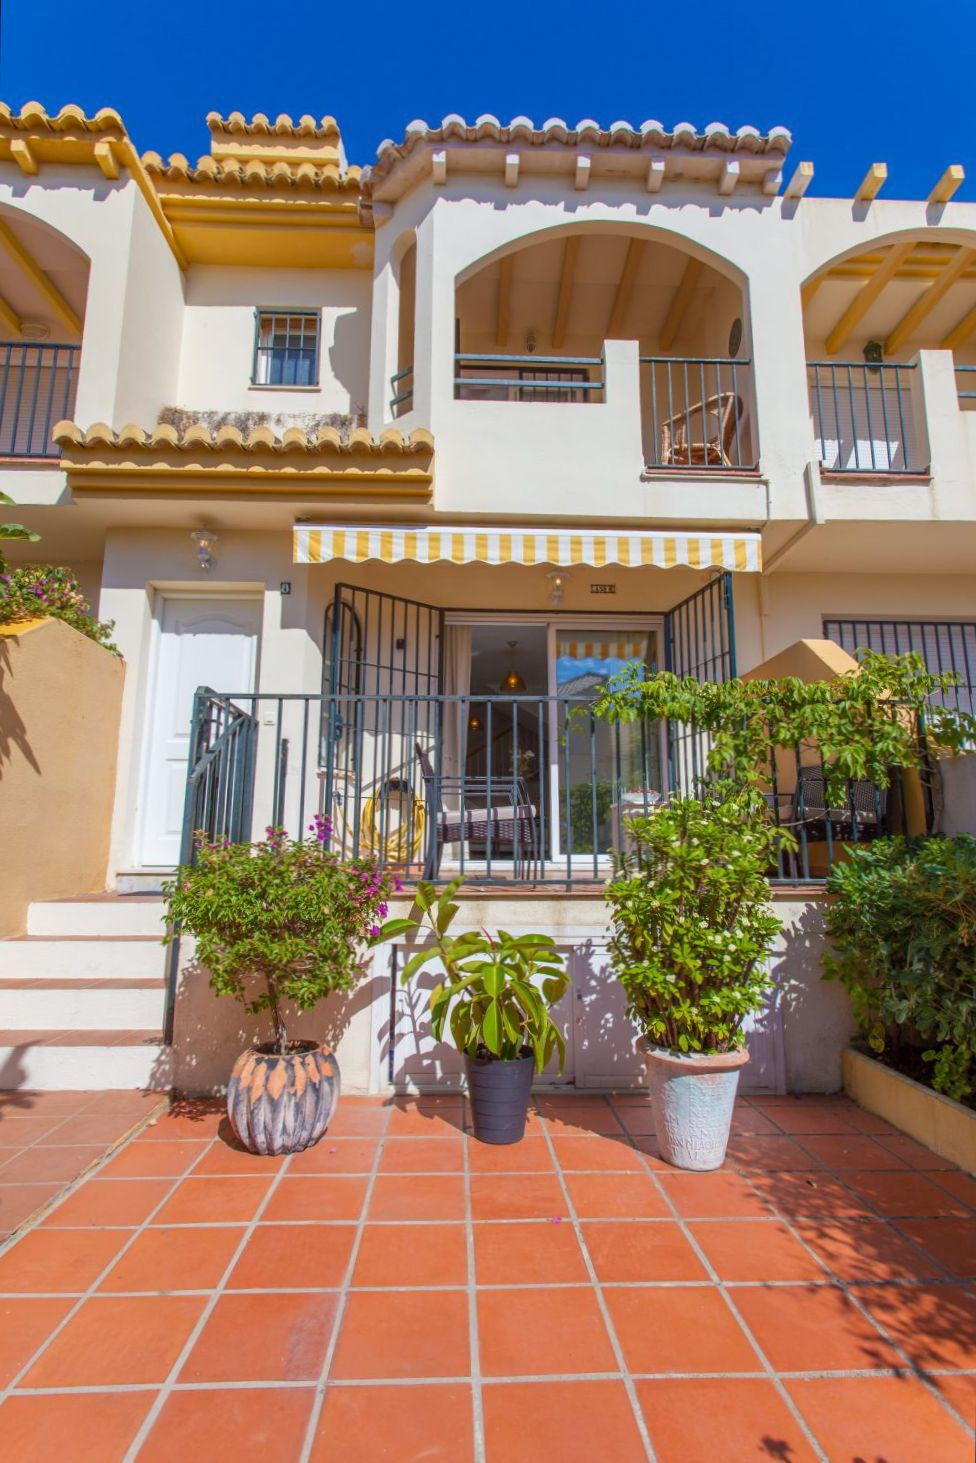 Townhouse in Costabella